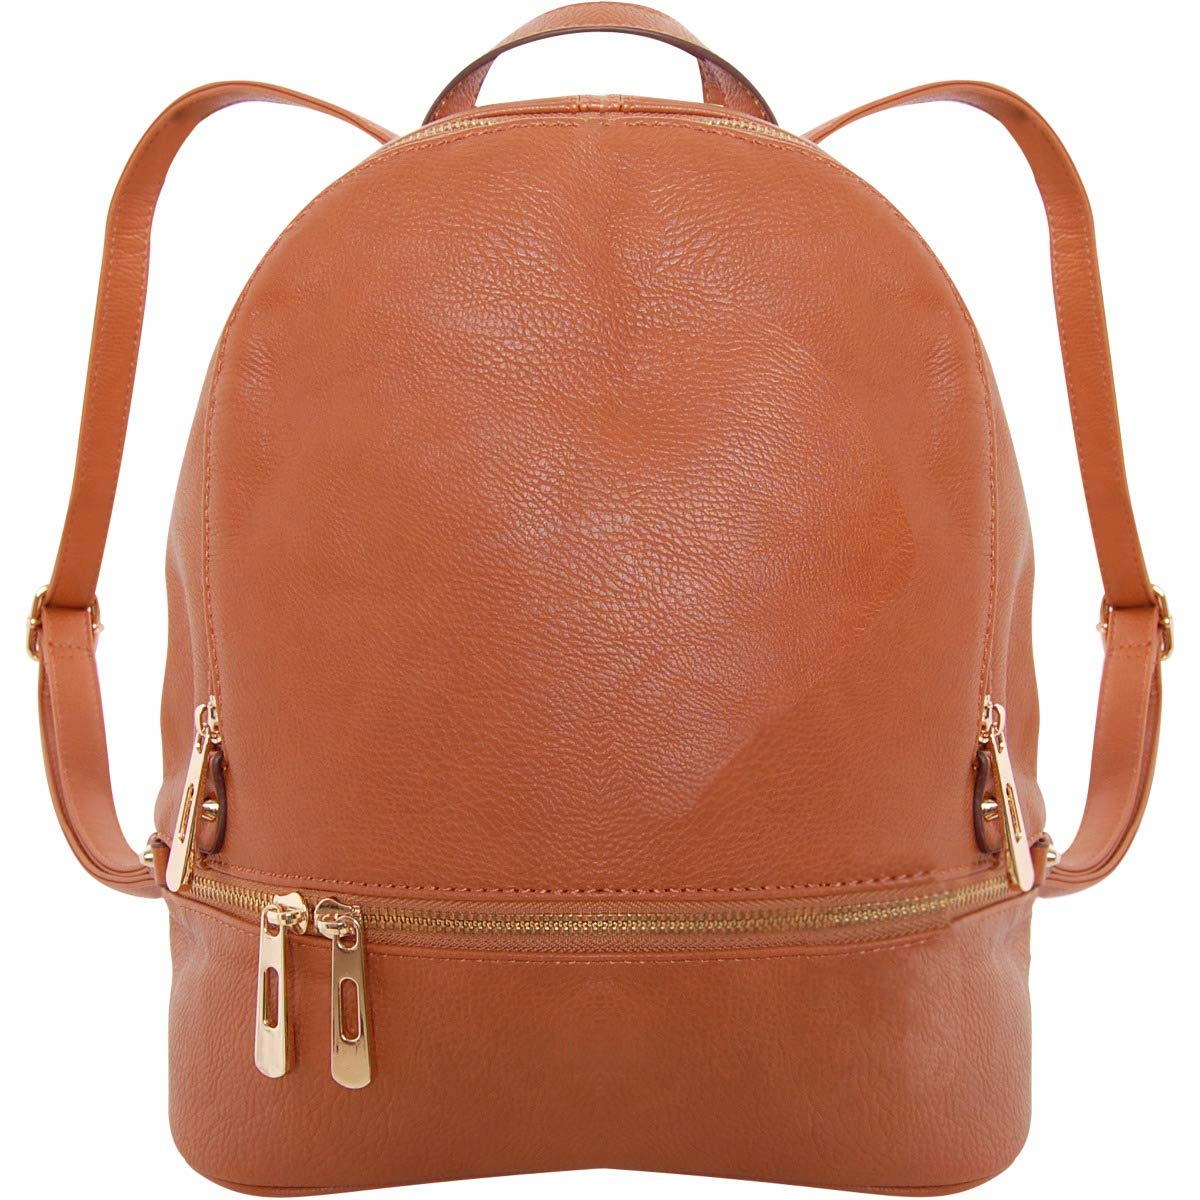 Humble Chic Vegan Leather Backpack Purse Small Fashion Travel School Bag Bookbag, Saddle Brown, Camel, Tan, Cognac, Walnut by Humble Chic NY